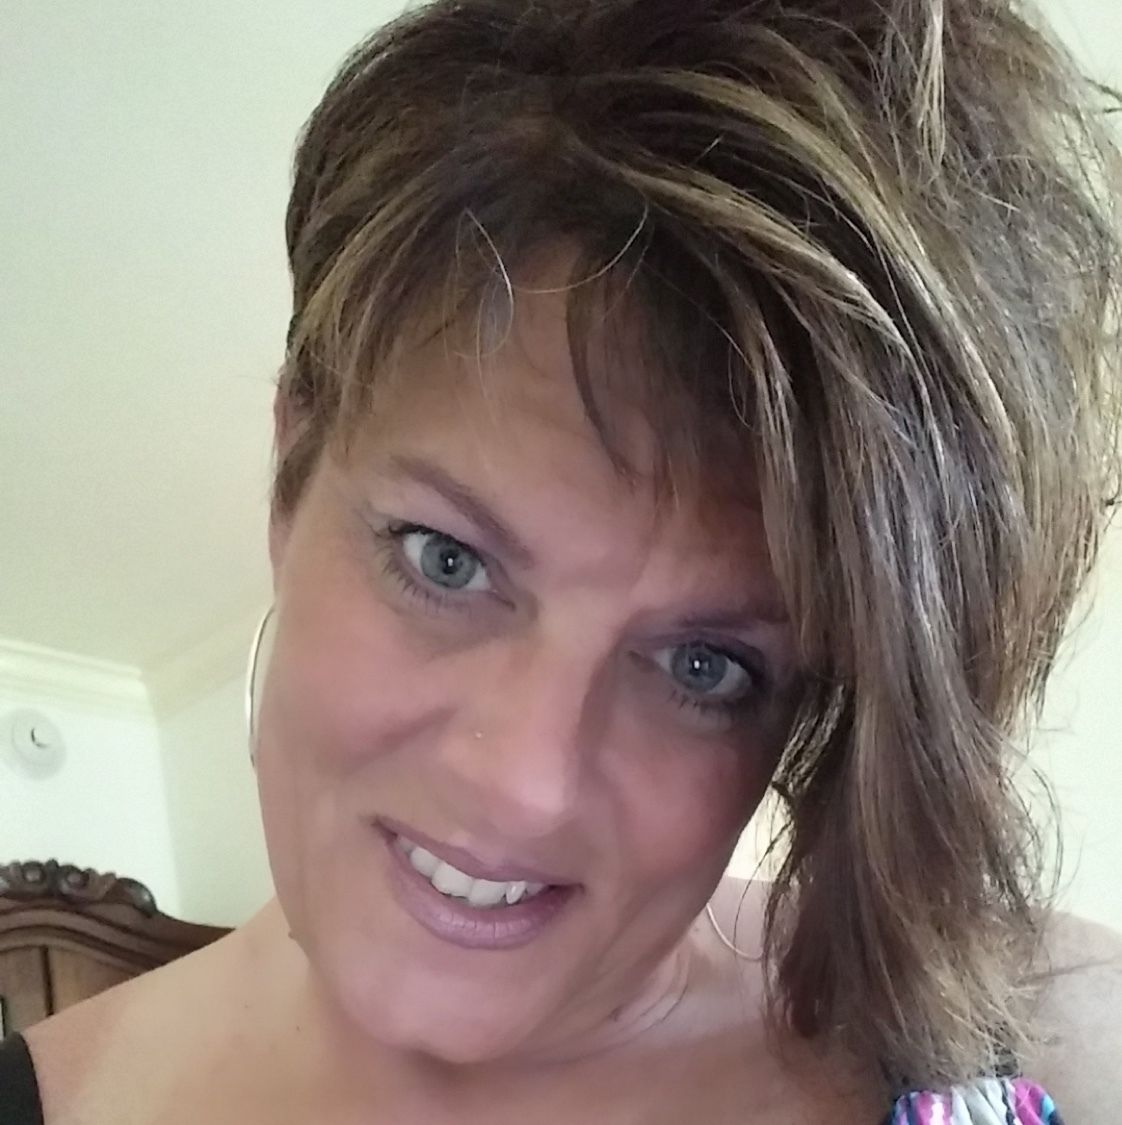 new cumberland divorced singles New cumberland's best 100% free divorced singles dating site meet thousands of divorced singles in new cumberland with mingle2's free divorced singles personal ads and chat rooms.